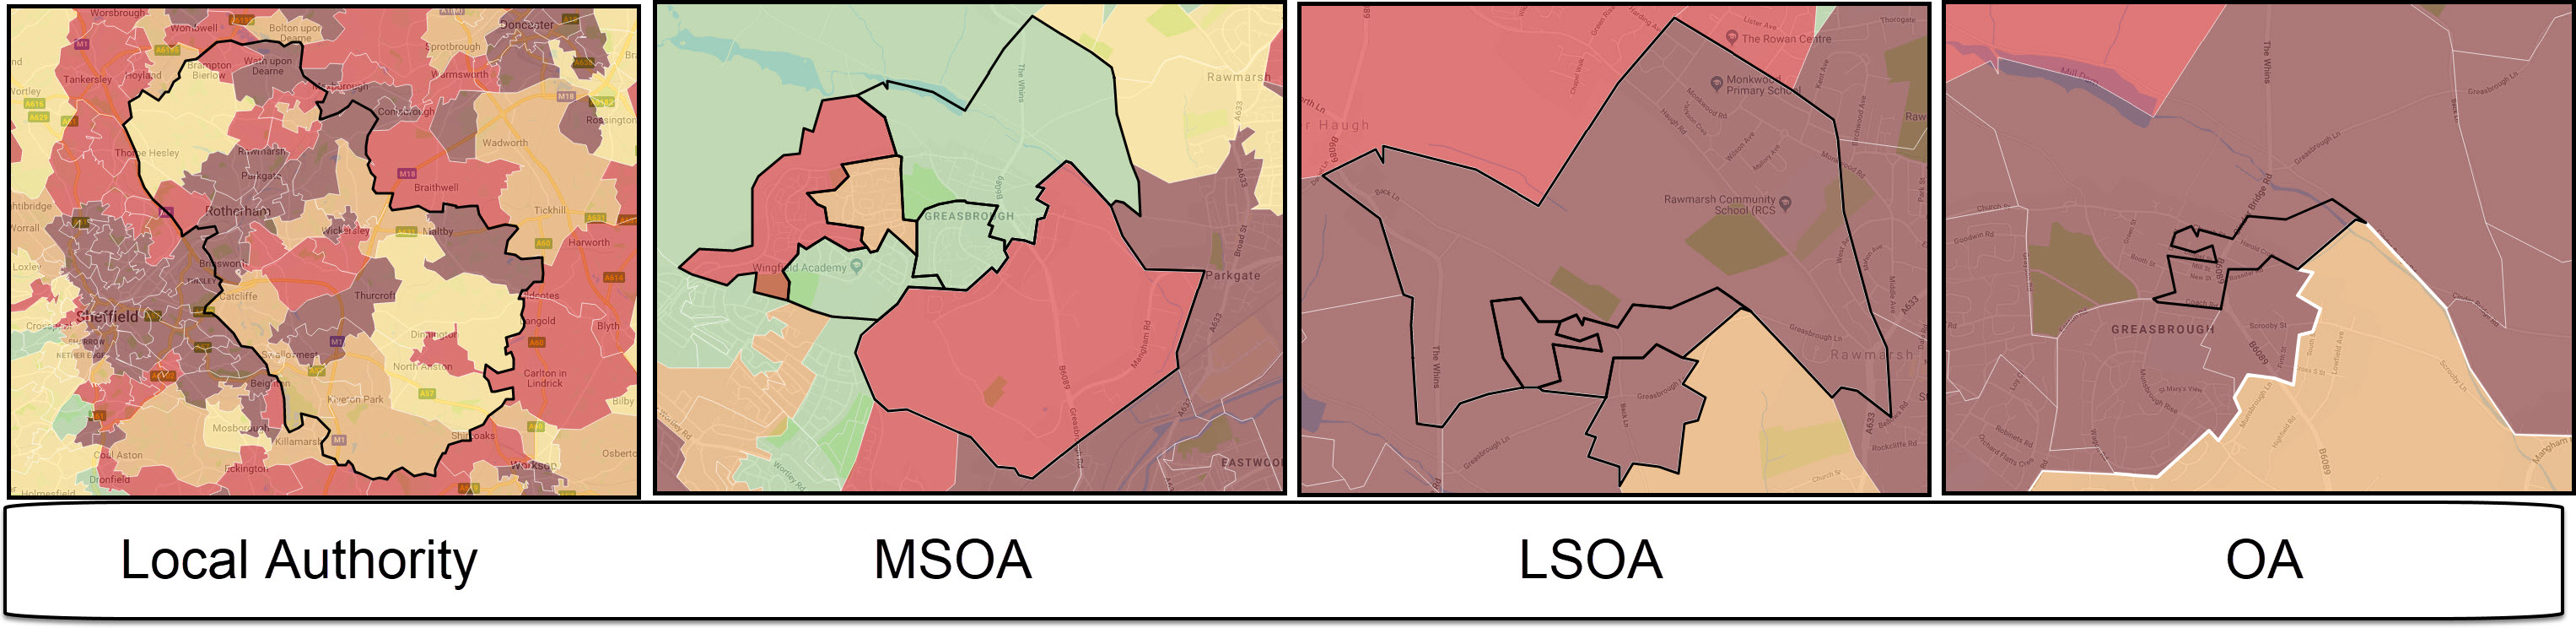 Images show how OAs nestles within LSOAs and LSOAs within MSOAs.